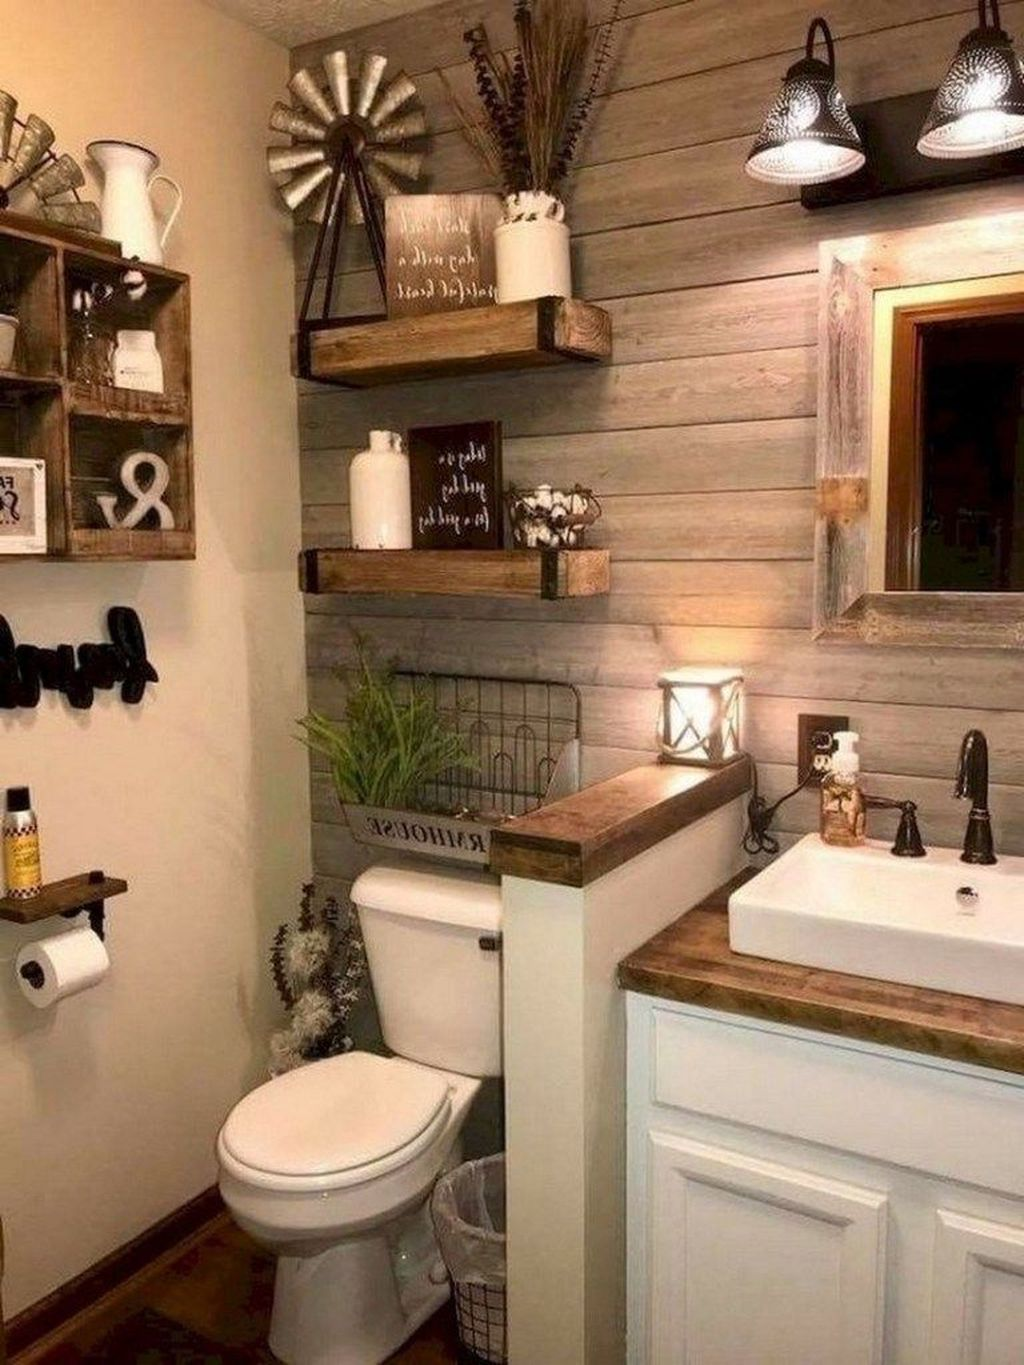 45 Latest Small Master Bathroom Decorating Ideas To Try Right Now In 2020 Farmhouse Master Bathroom Farmhouse Bathroom Decor Bathroom Remodel Master